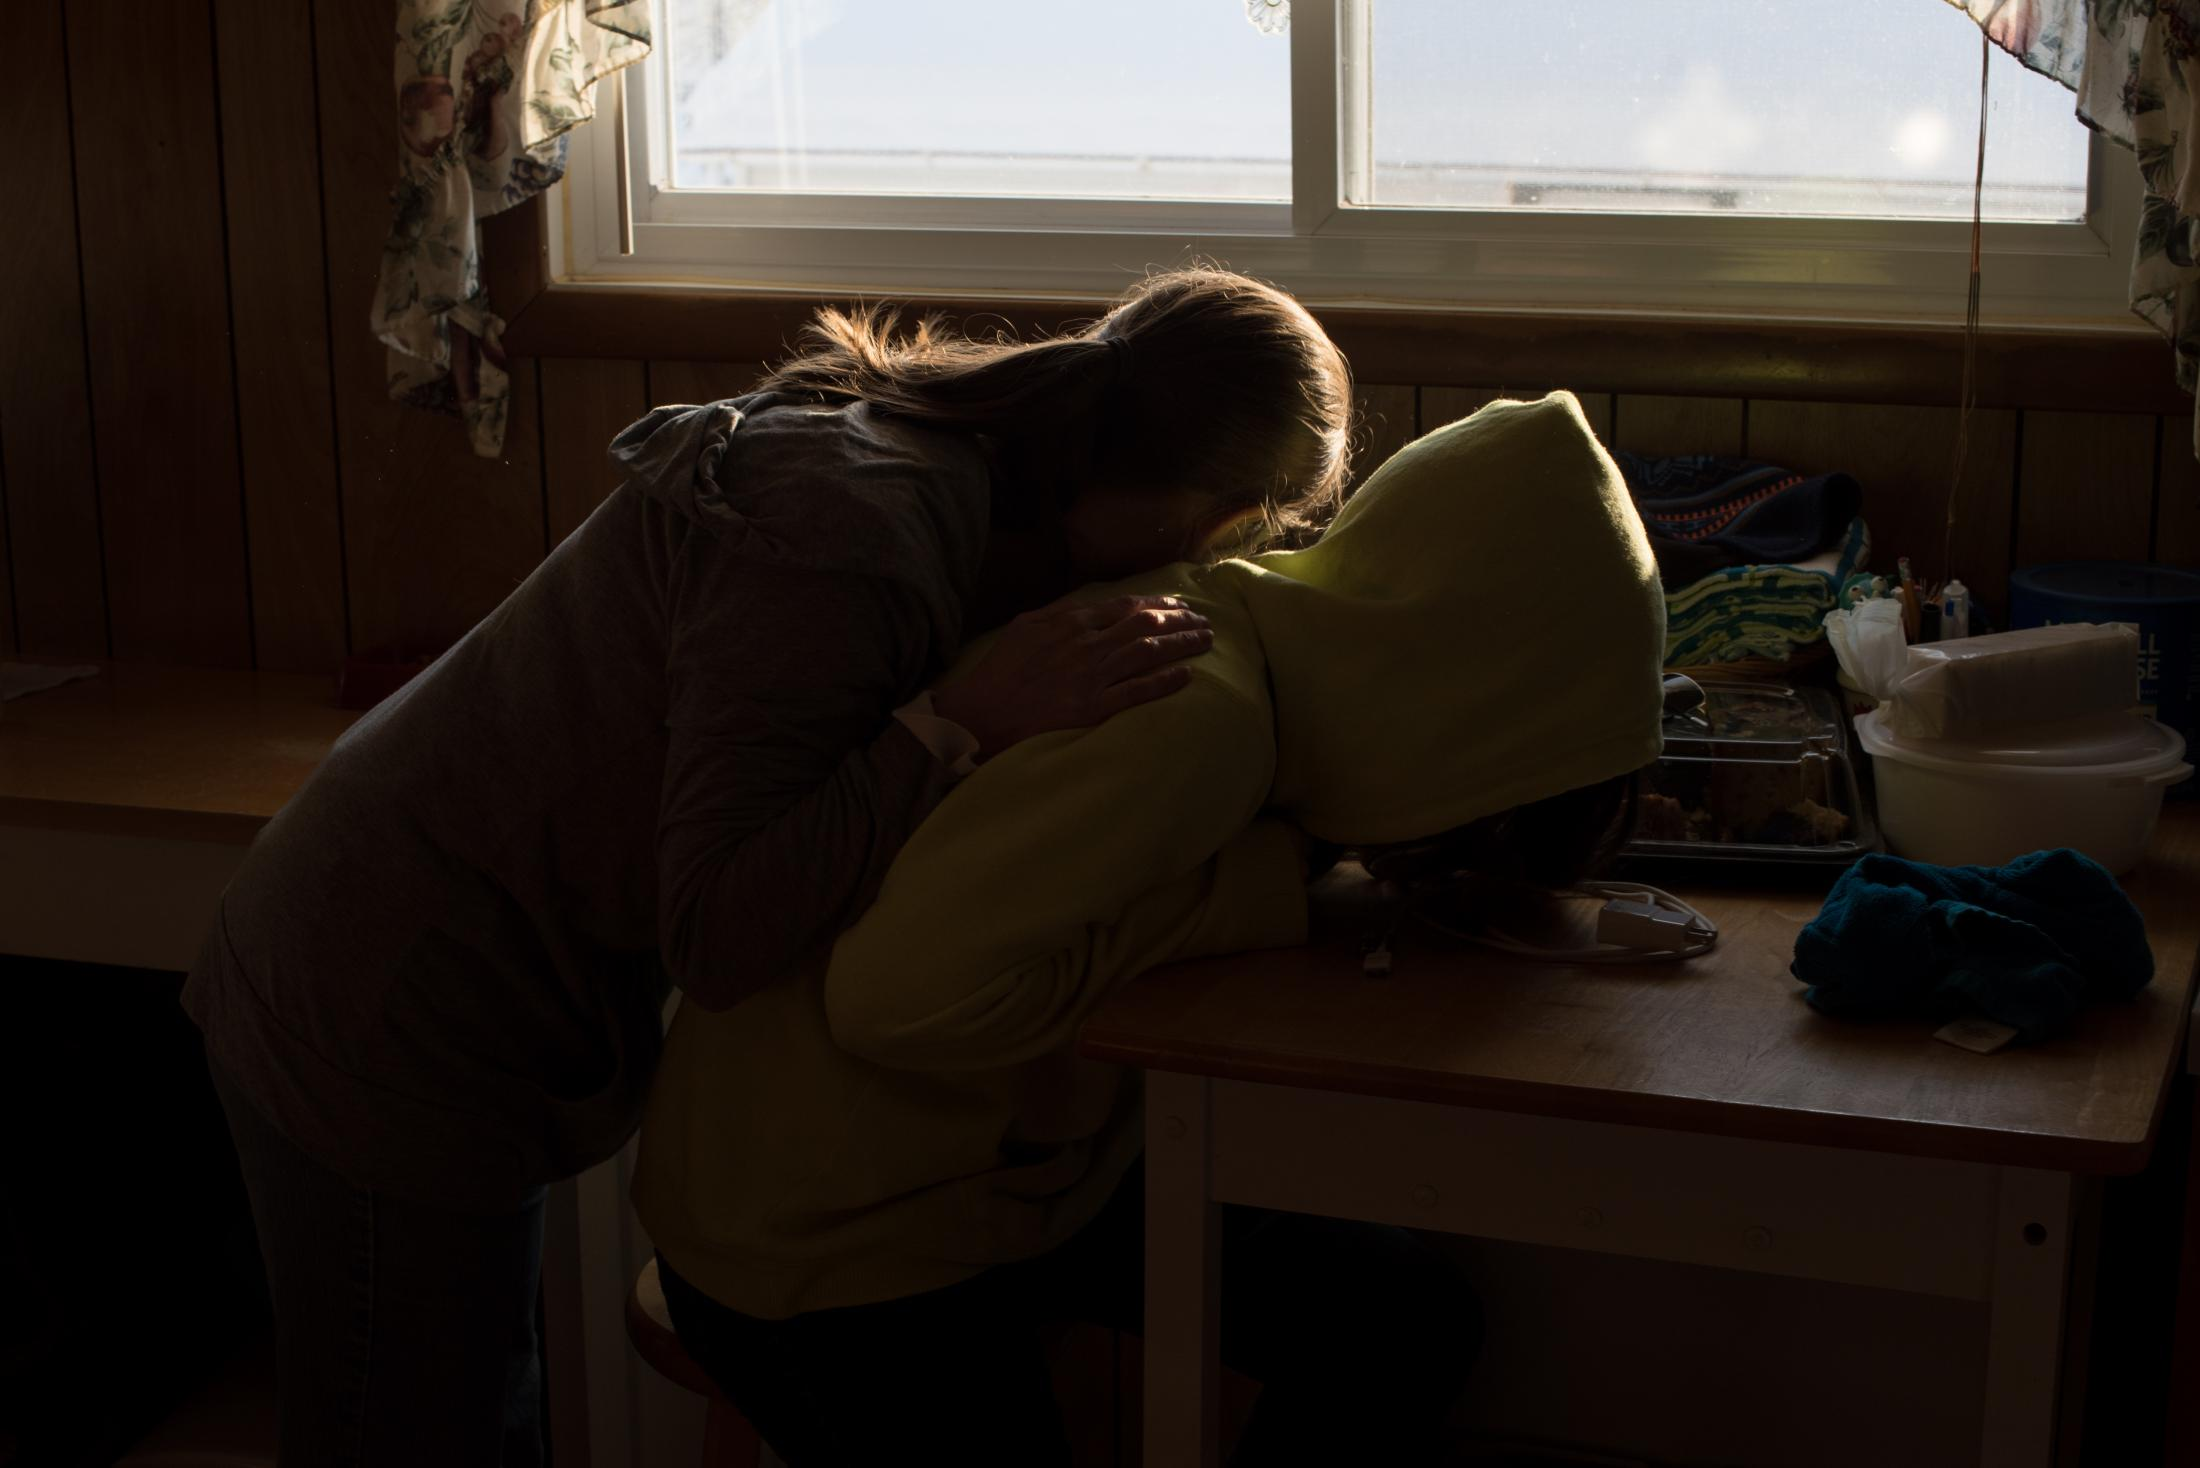 Becky Mollohan tenderly lays her head on her daughter Maddy's back in their kitchen in Coolville one afternoon in March 2015.